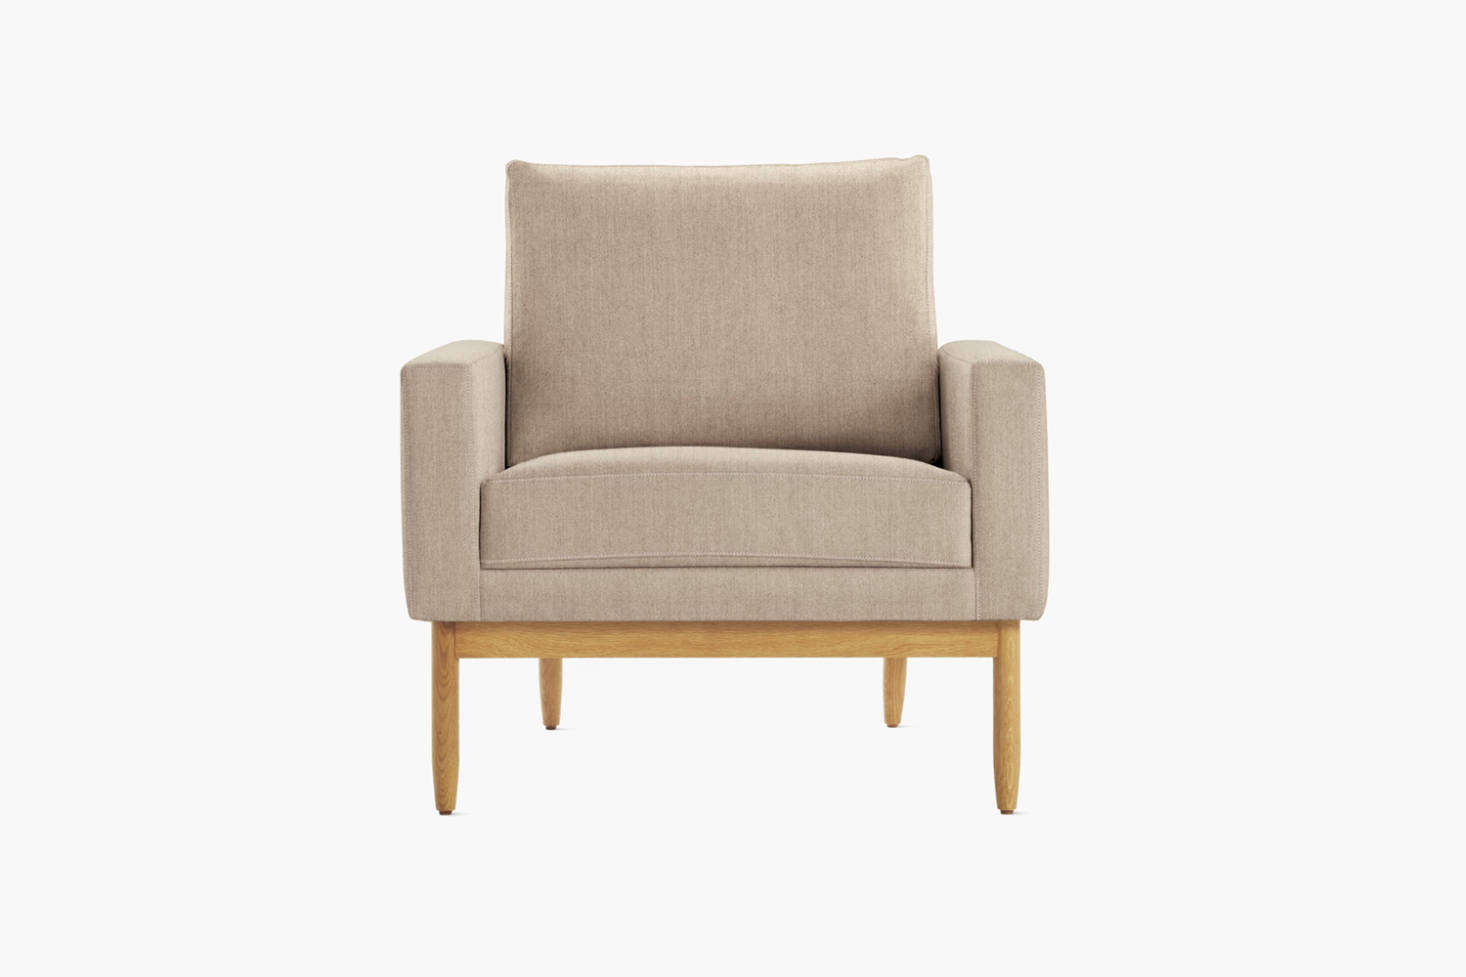 Inspired by midcentury Danish design, the Raleigh Armchair is $4,095 at Design Within Reach.